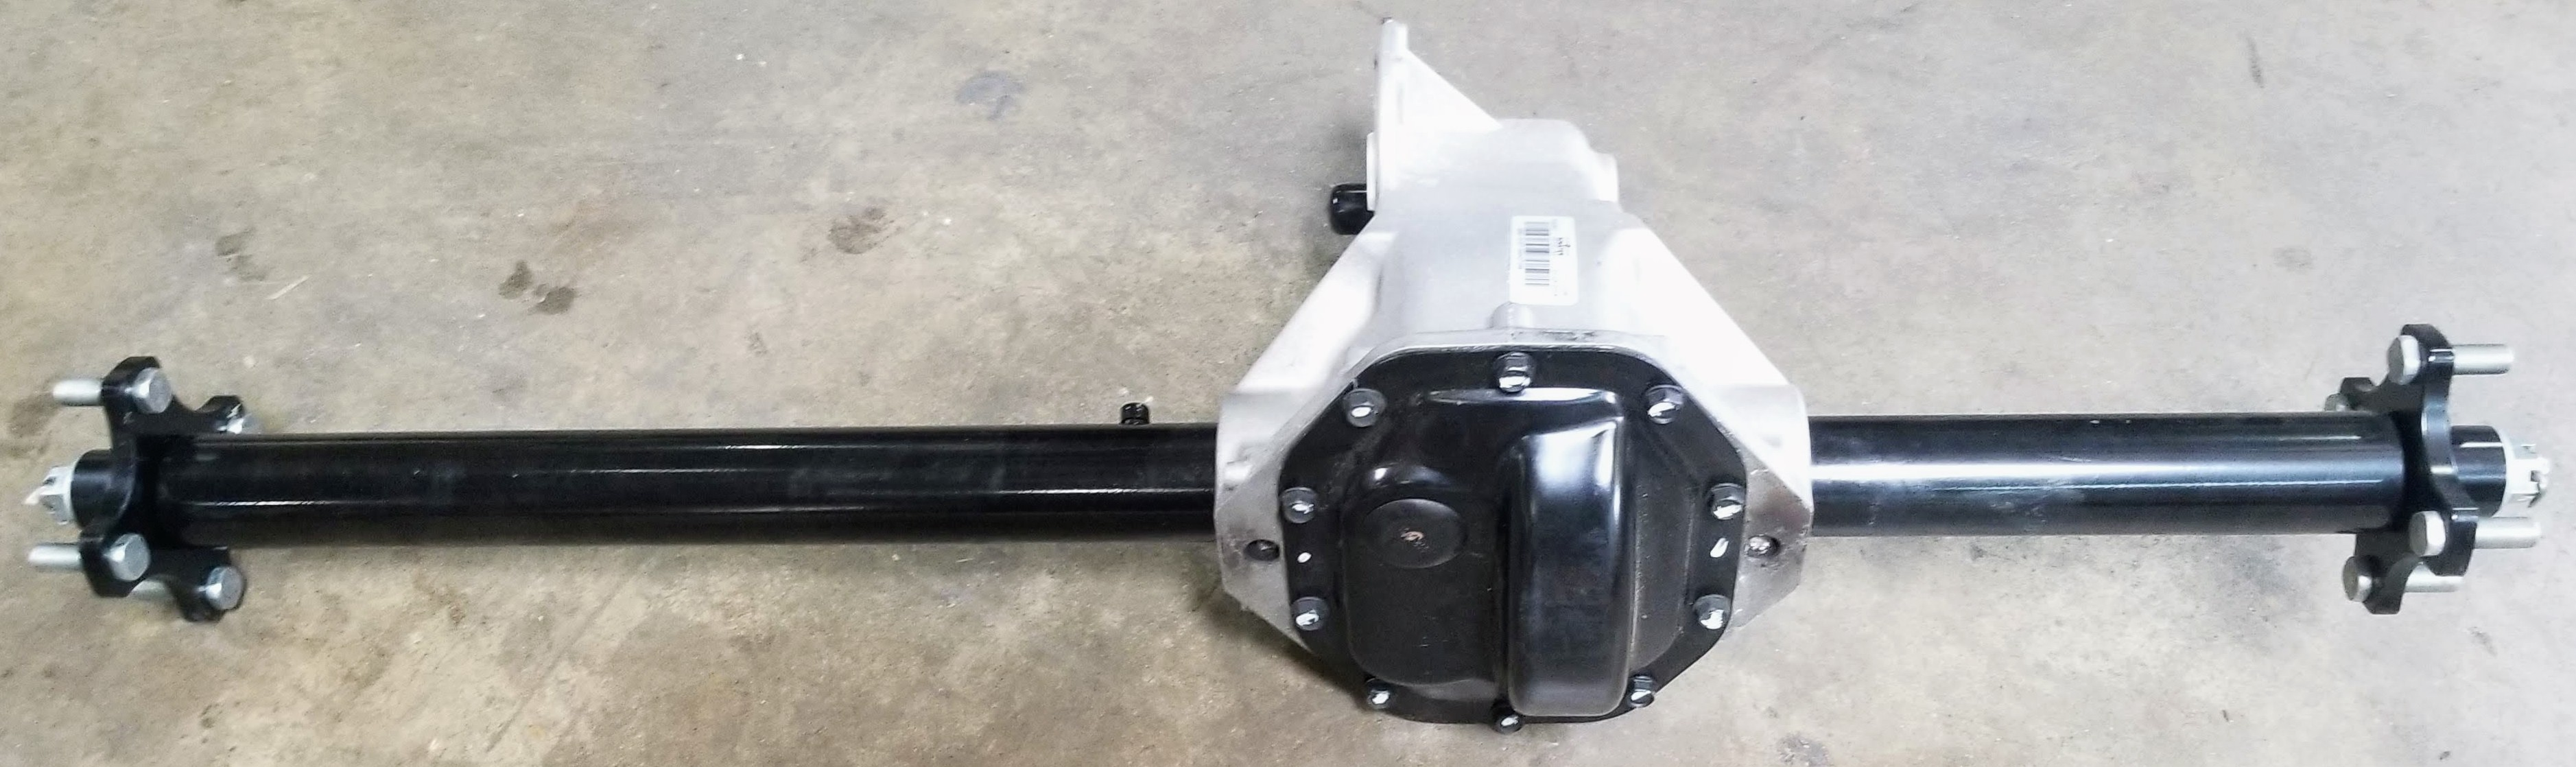 Ezgo Rxv Electric Golf Cart Rear End Differential Schafer